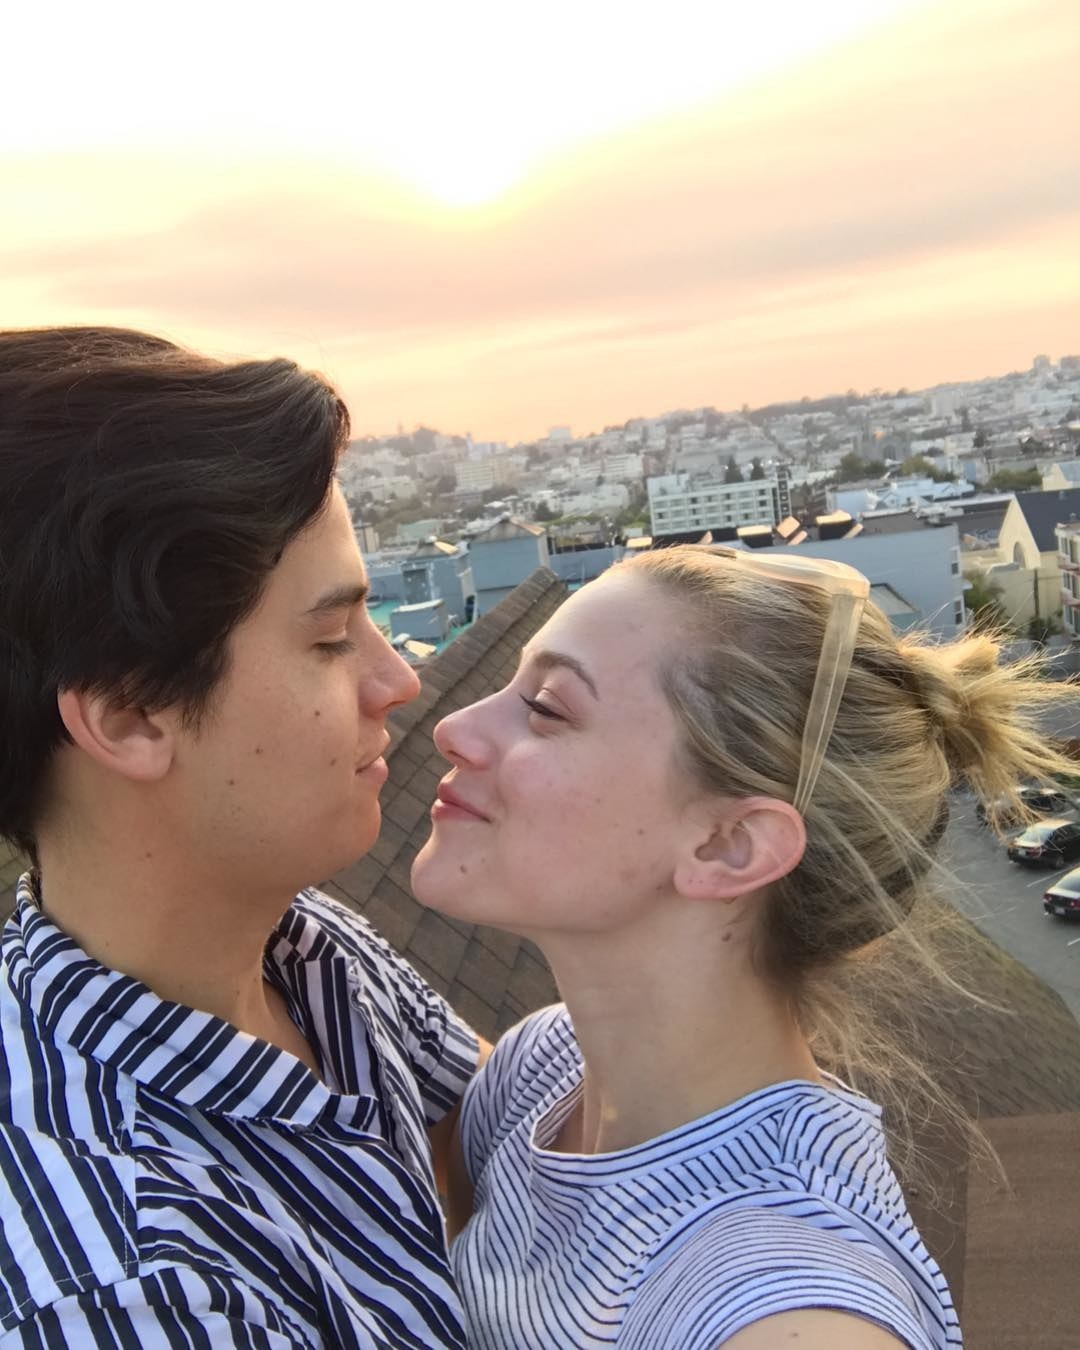 Cole Sprouse and Lili Reinhart stare lovingly into each other's eyes